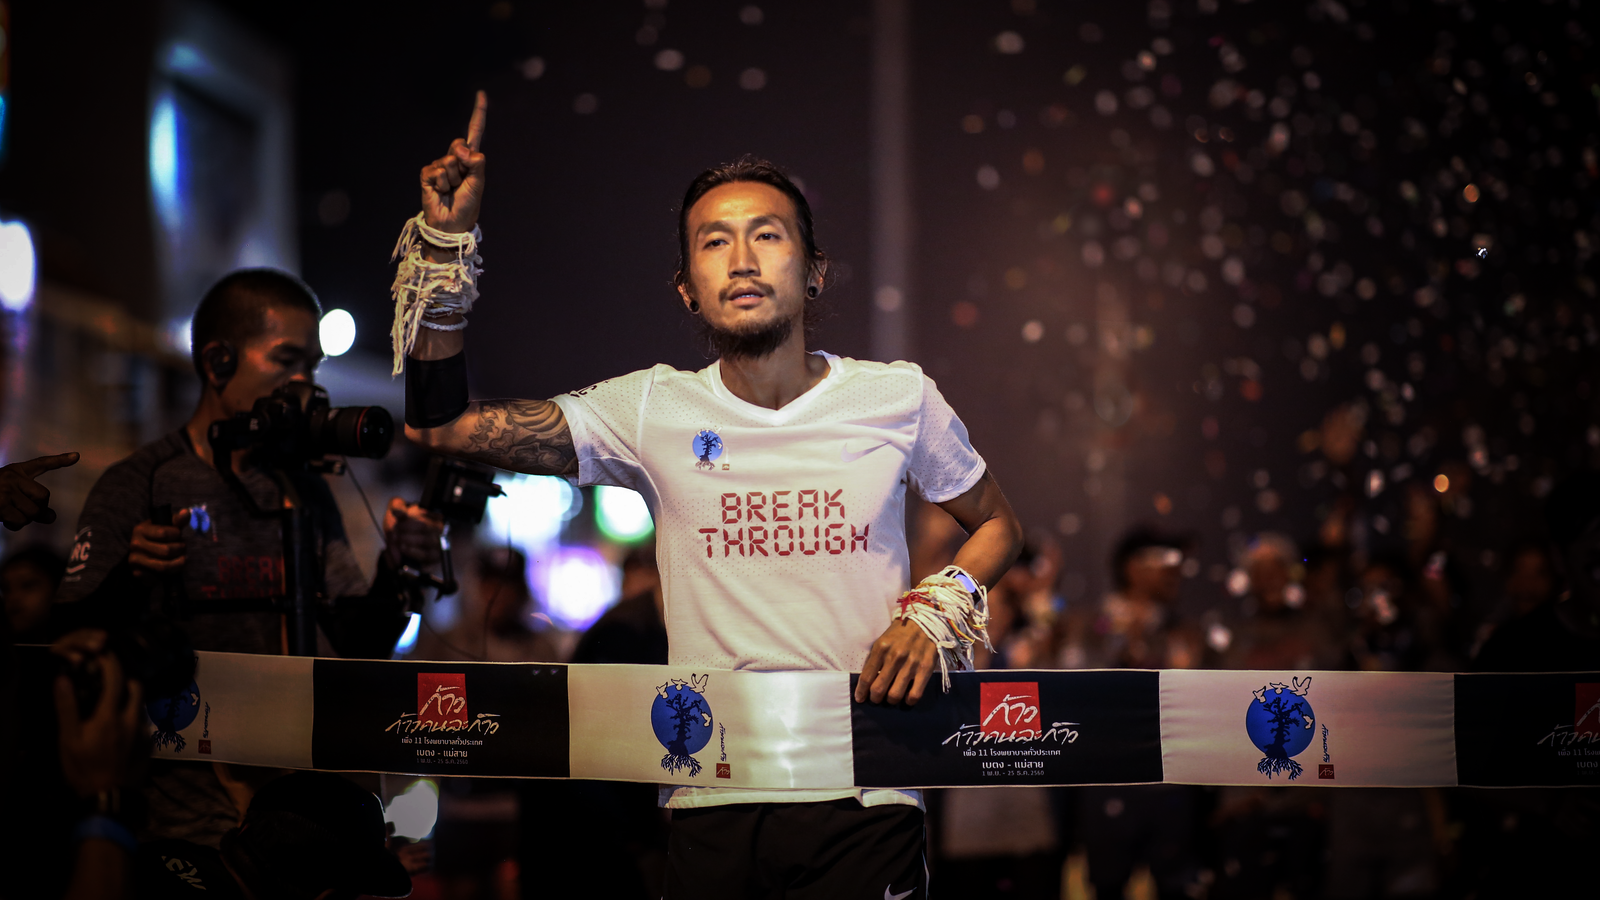 THAI ROCK STAR TOON COMPLETES HIS EPIC 55-DAY RUN - Nike News